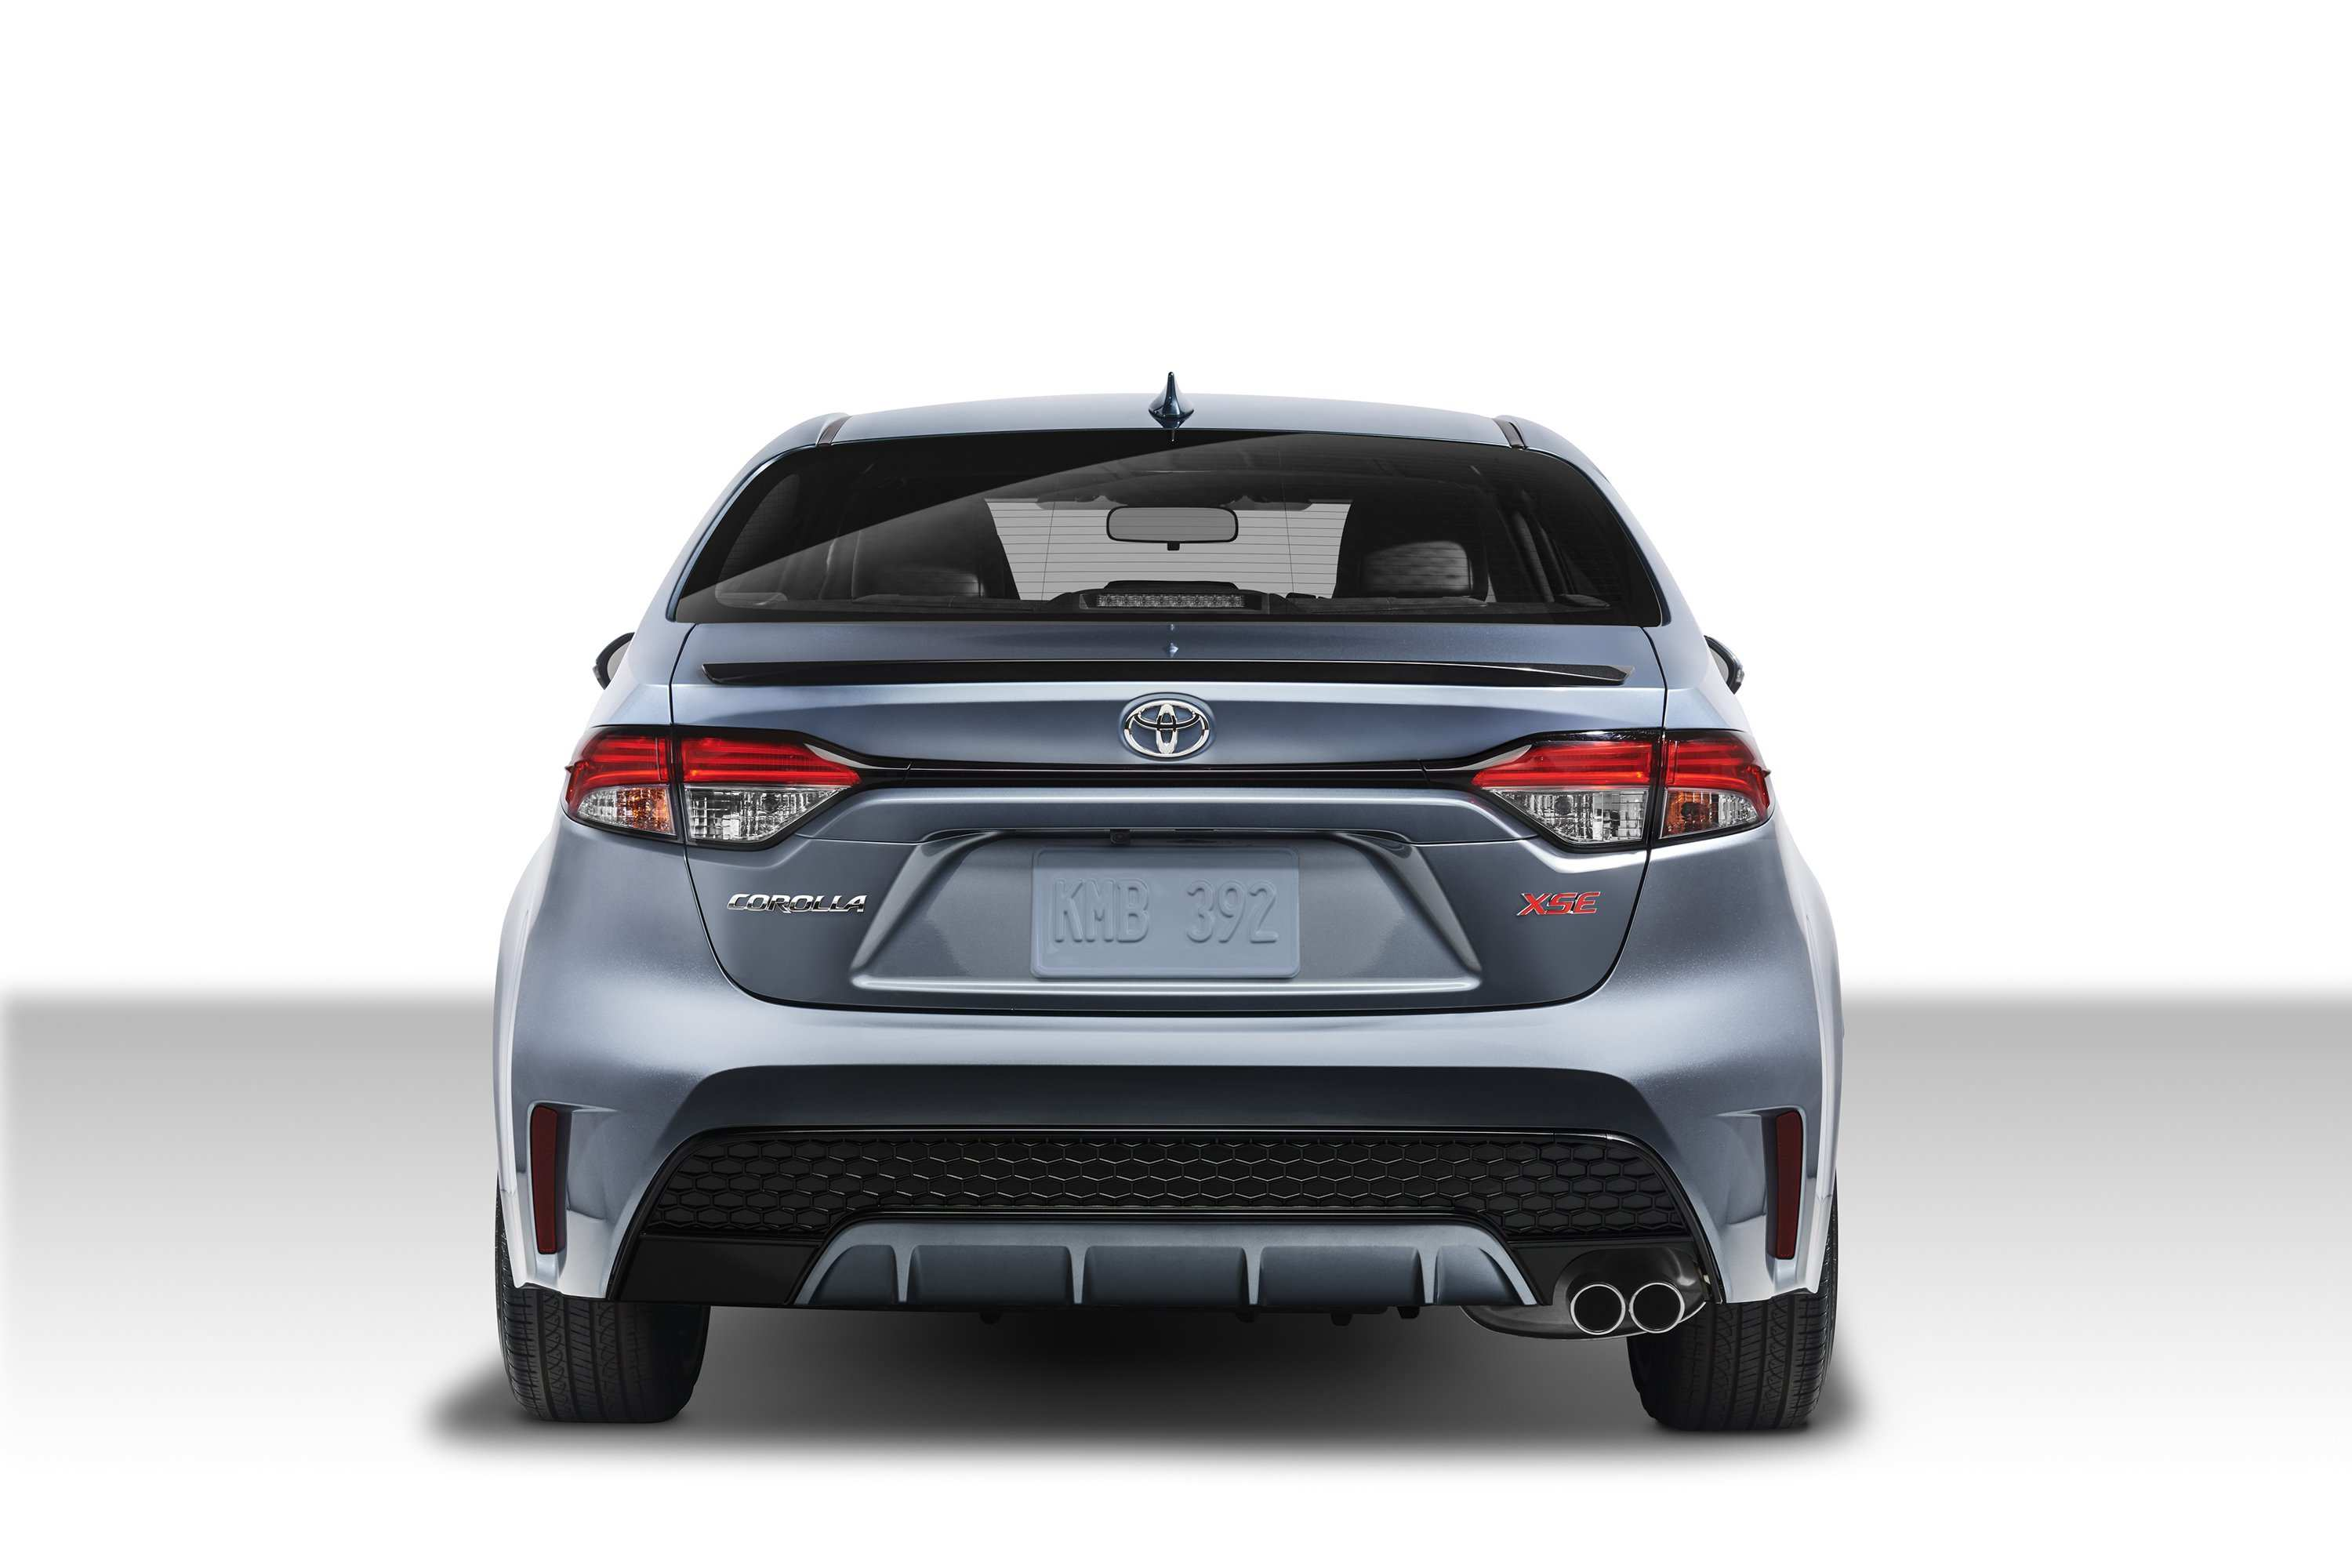 35 The Best Toyota Corolla 2020 Model Concept And Review